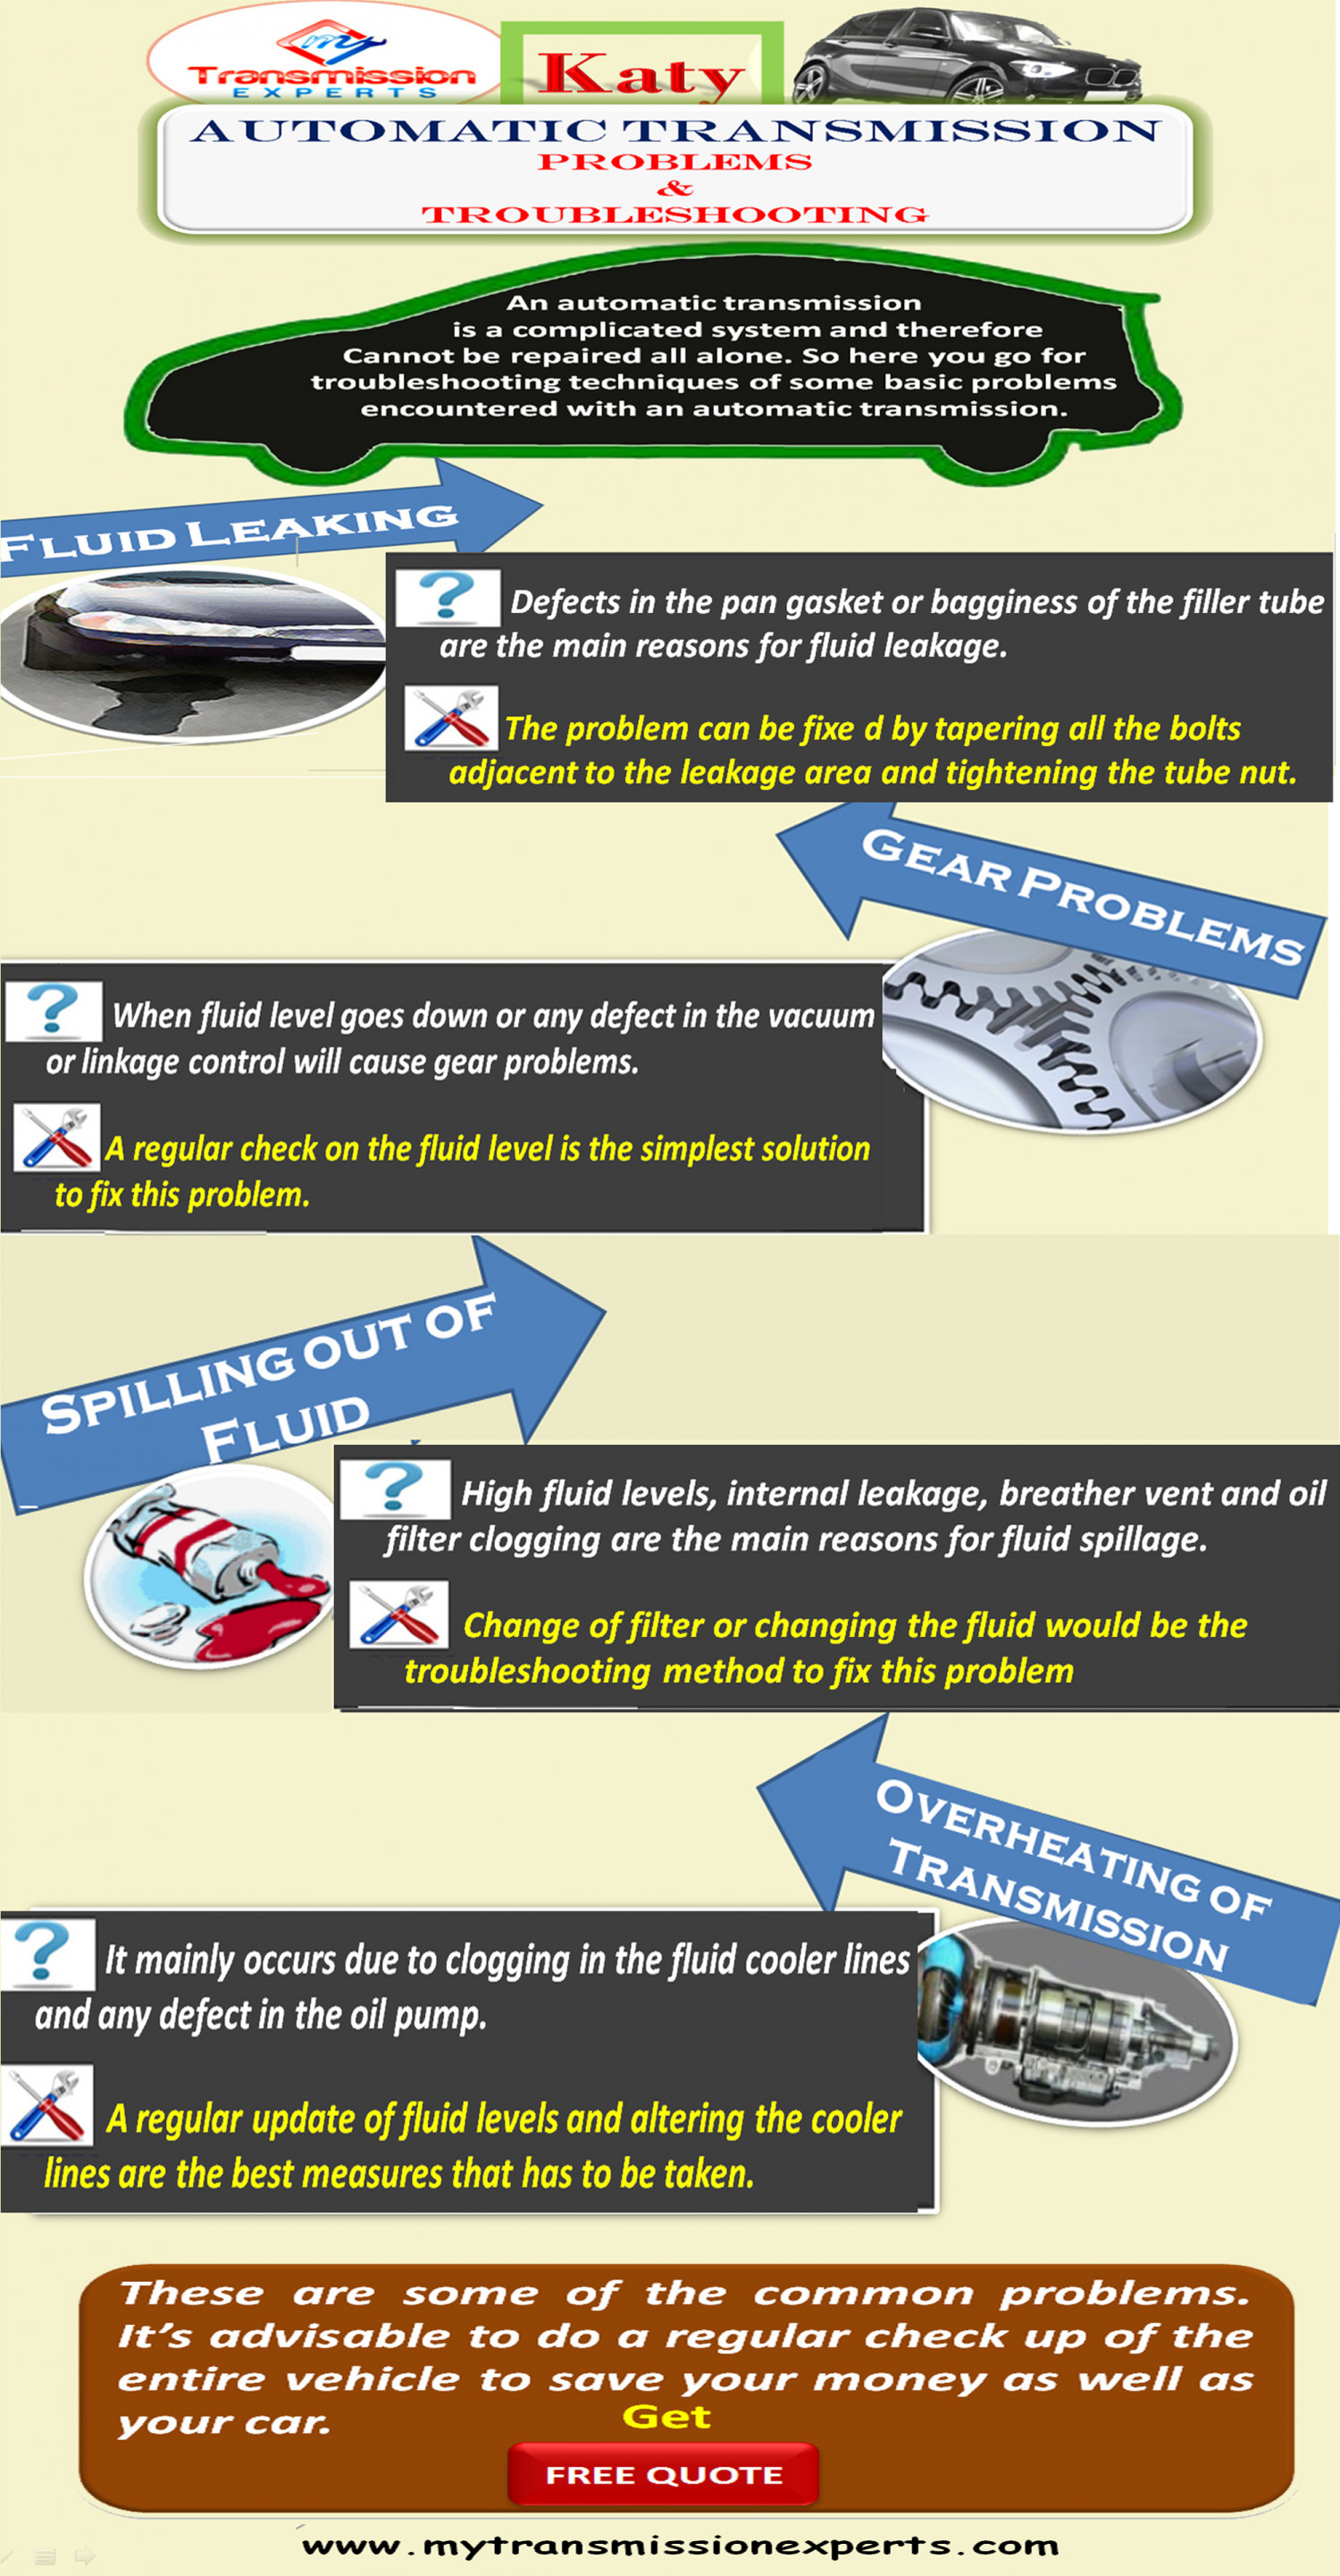 Katy Automatic Transmission Problems & Troubleshooting Infographic